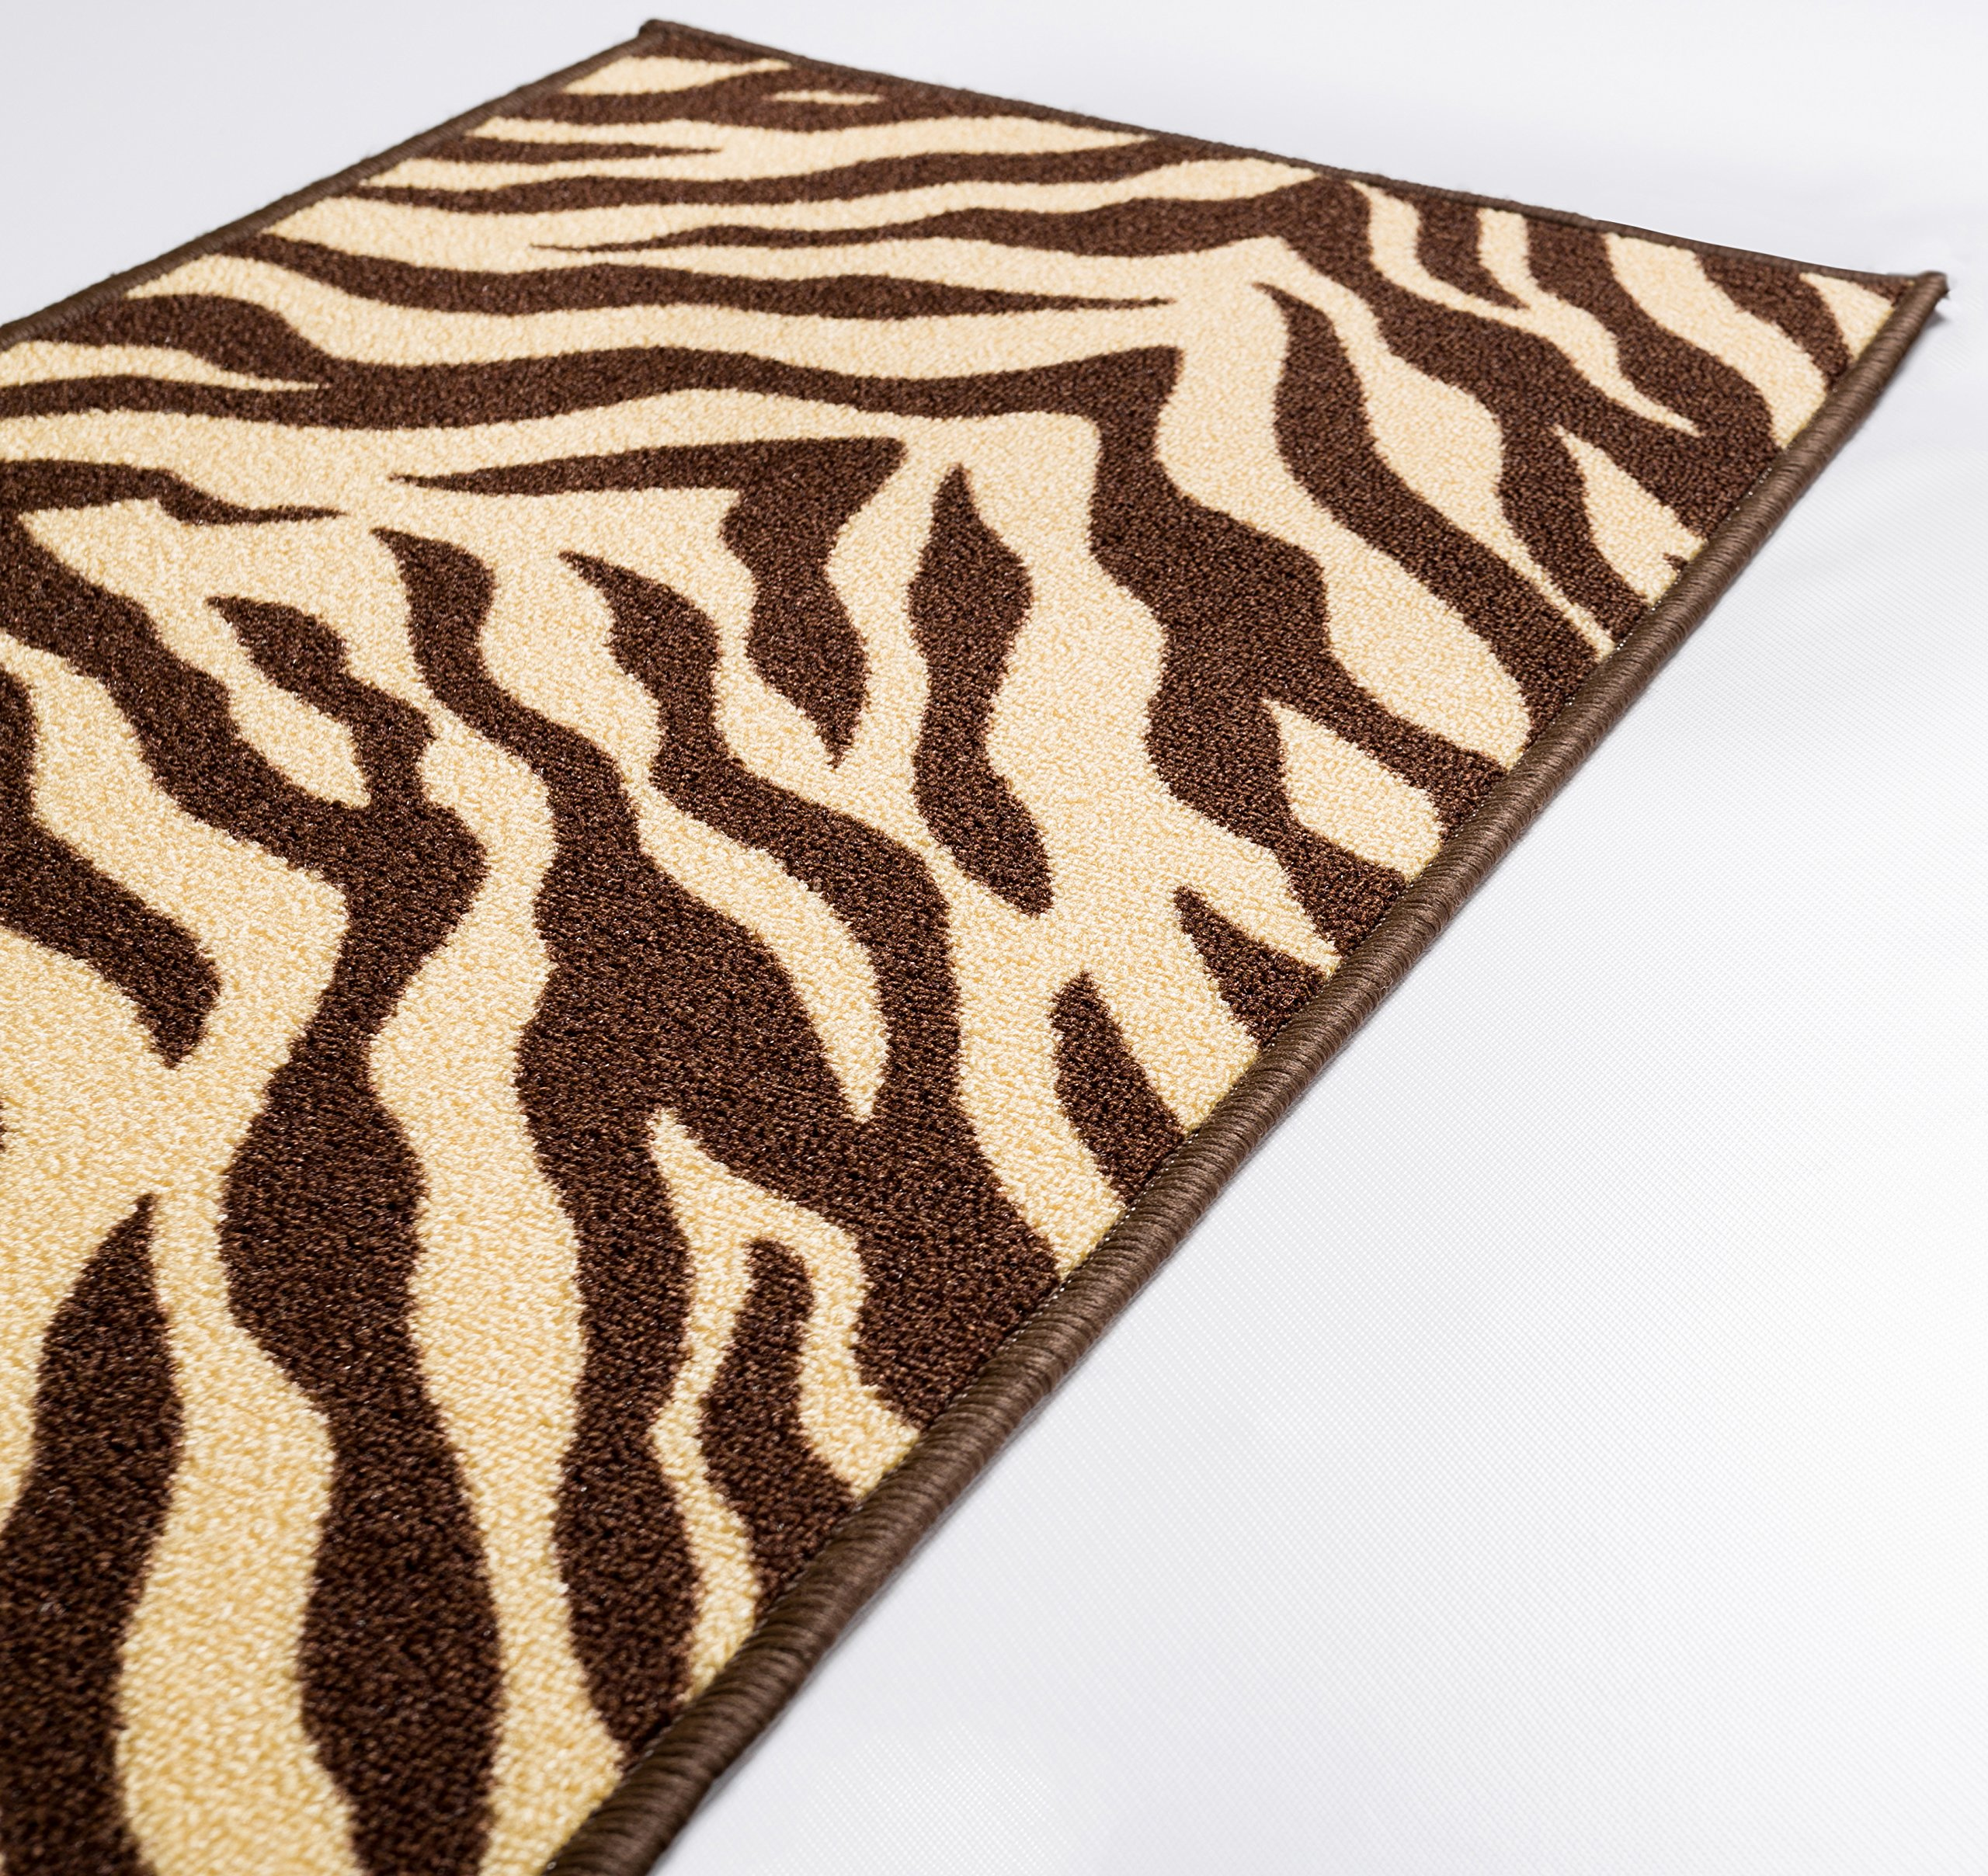 Well Woven 2501-2S Kings Court Zebra Modern Brown Animal Print 1'8'' x 5' Accent Indoor/Outdoor Runner Rug by Well Woven (Image #4)